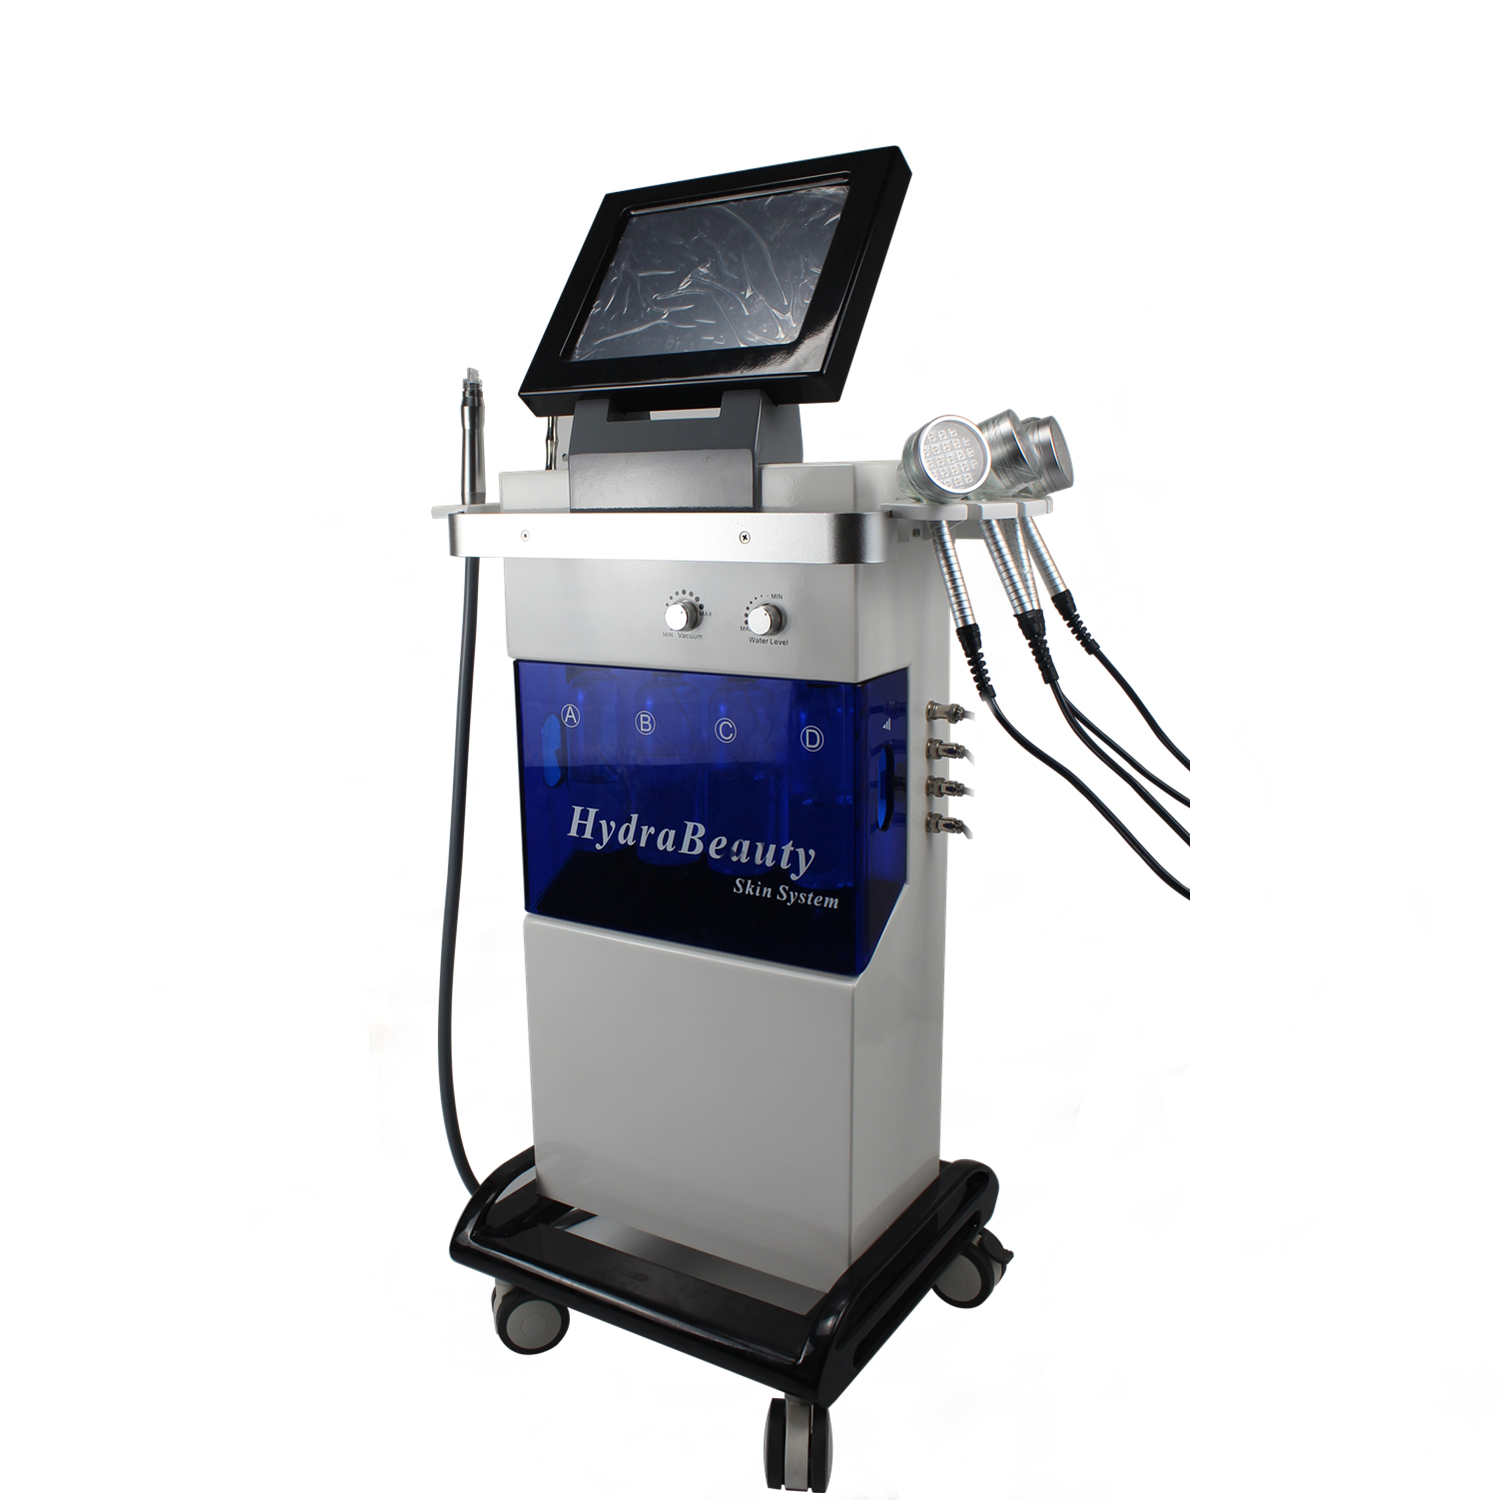 Hydrafacial Deep Cleaning Oxygen Jet peel Diamond Dermabrasion Machine with PDT Light